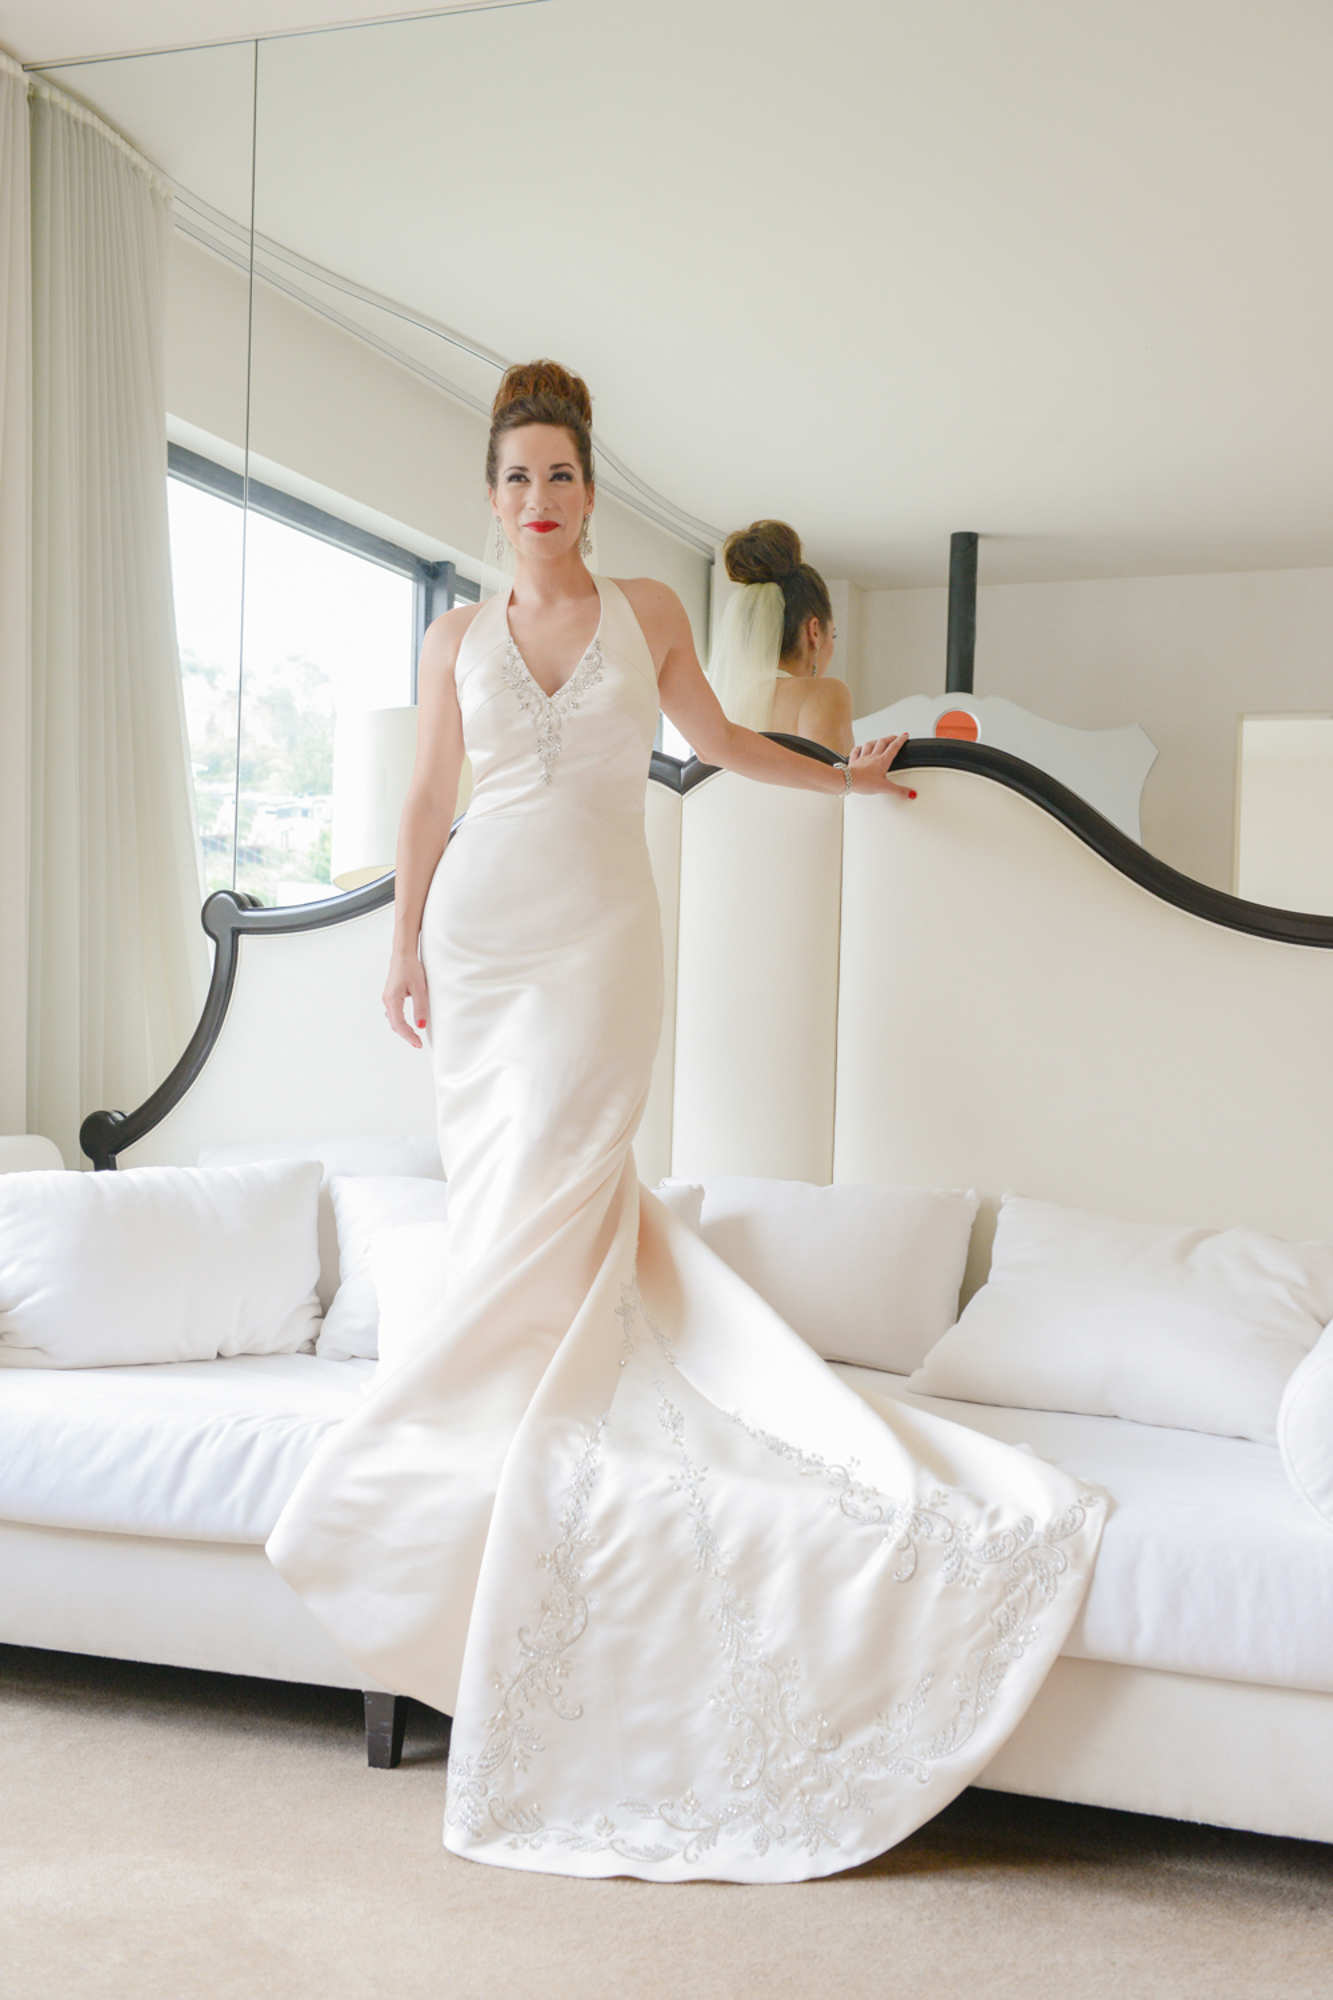 arthousephotographs.com | Beverly Hills Wedding at The Mondrian | Los Angeles Wedding Photographer | Southern California Wedding Photographer | Arthouse Photographs